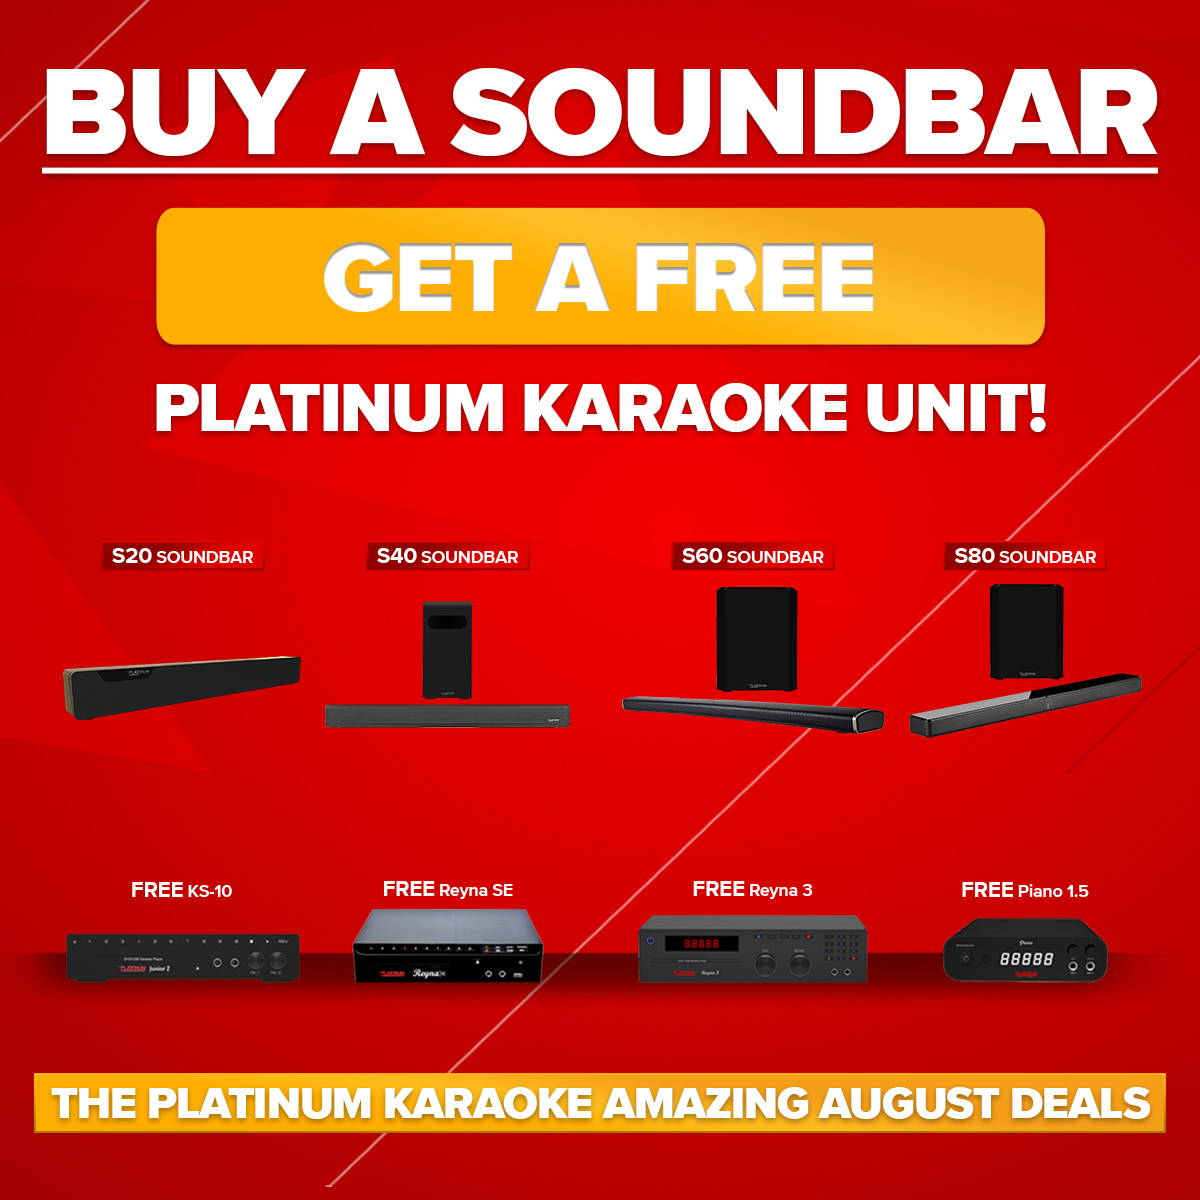 Best Karaoke Machines in the Philippines - Platinum Karaoke